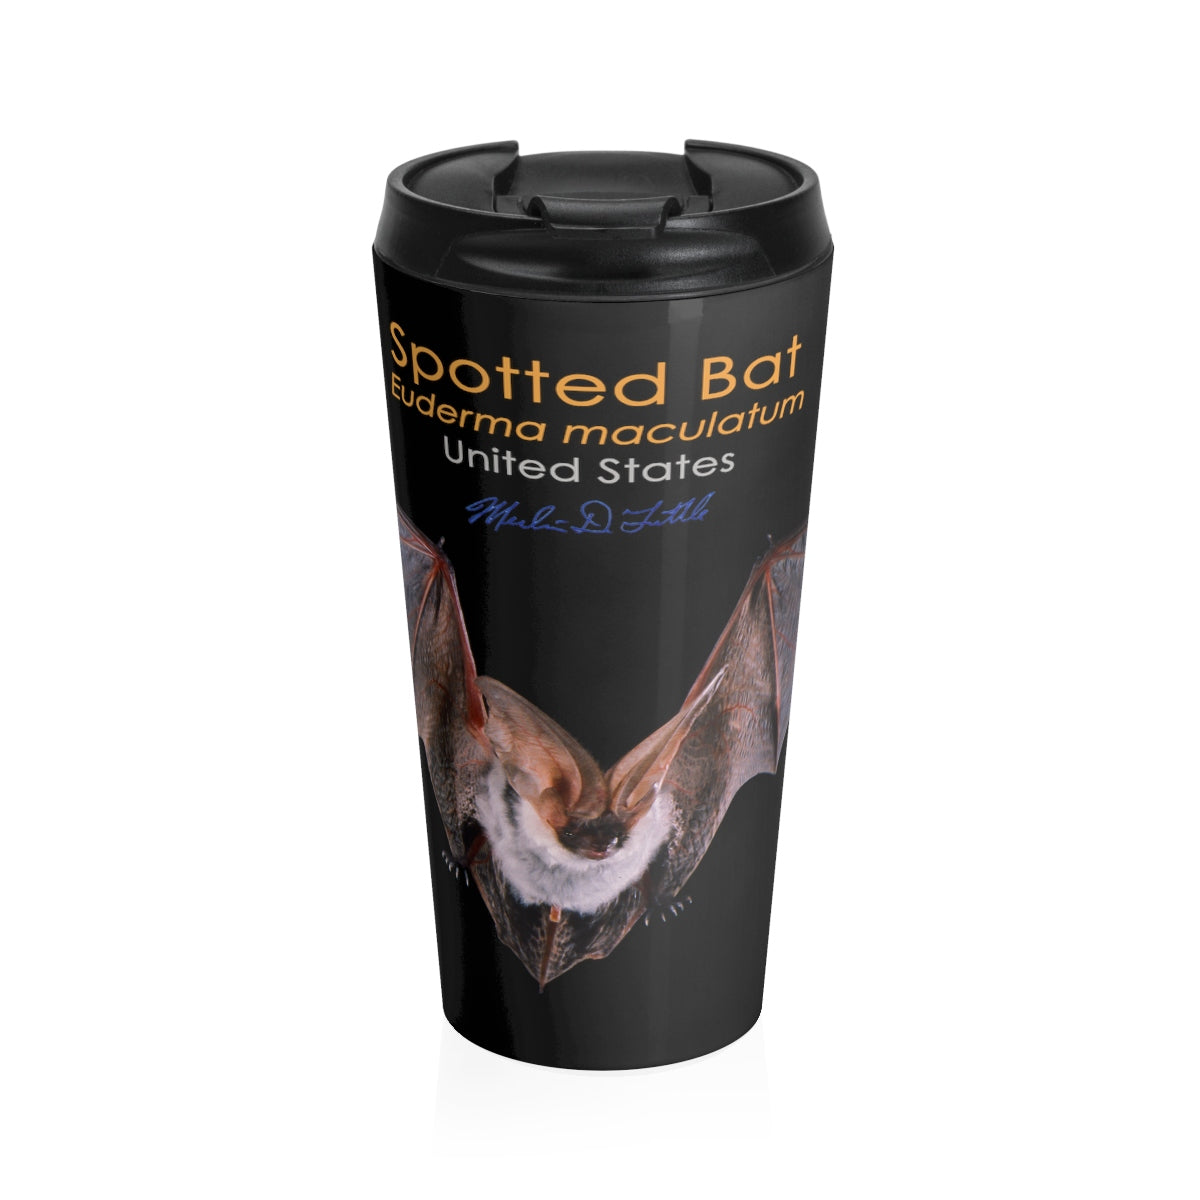 c0a8cc135d7 Spotted Bat Stainless Steel Travel Mug